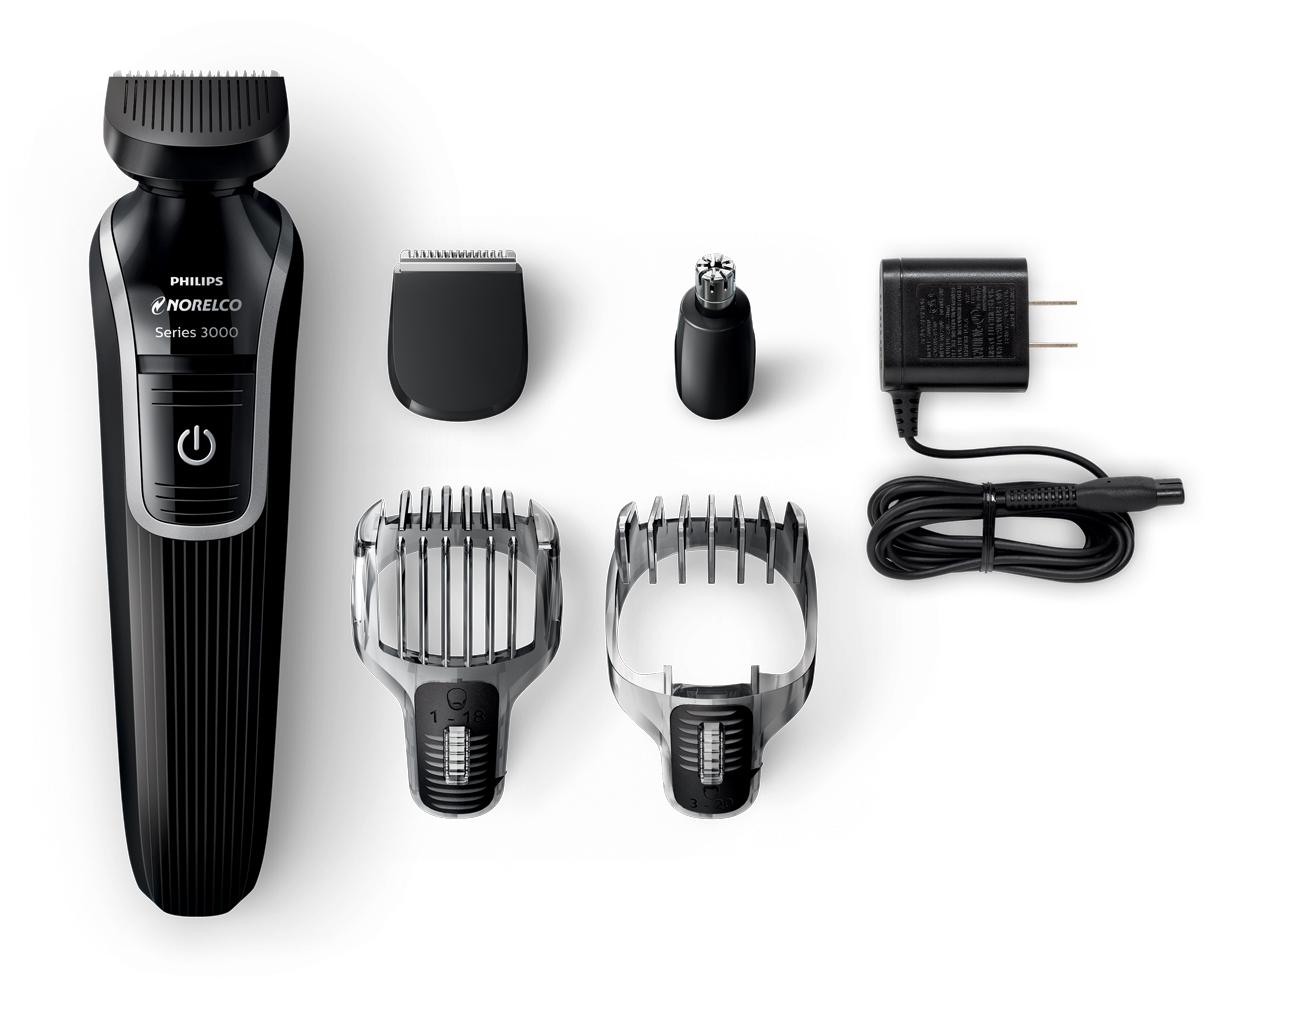 philips norelco multigroom 3100 with 5 attachments and skin friendly blades qg3330. Black Bedroom Furniture Sets. Home Design Ideas